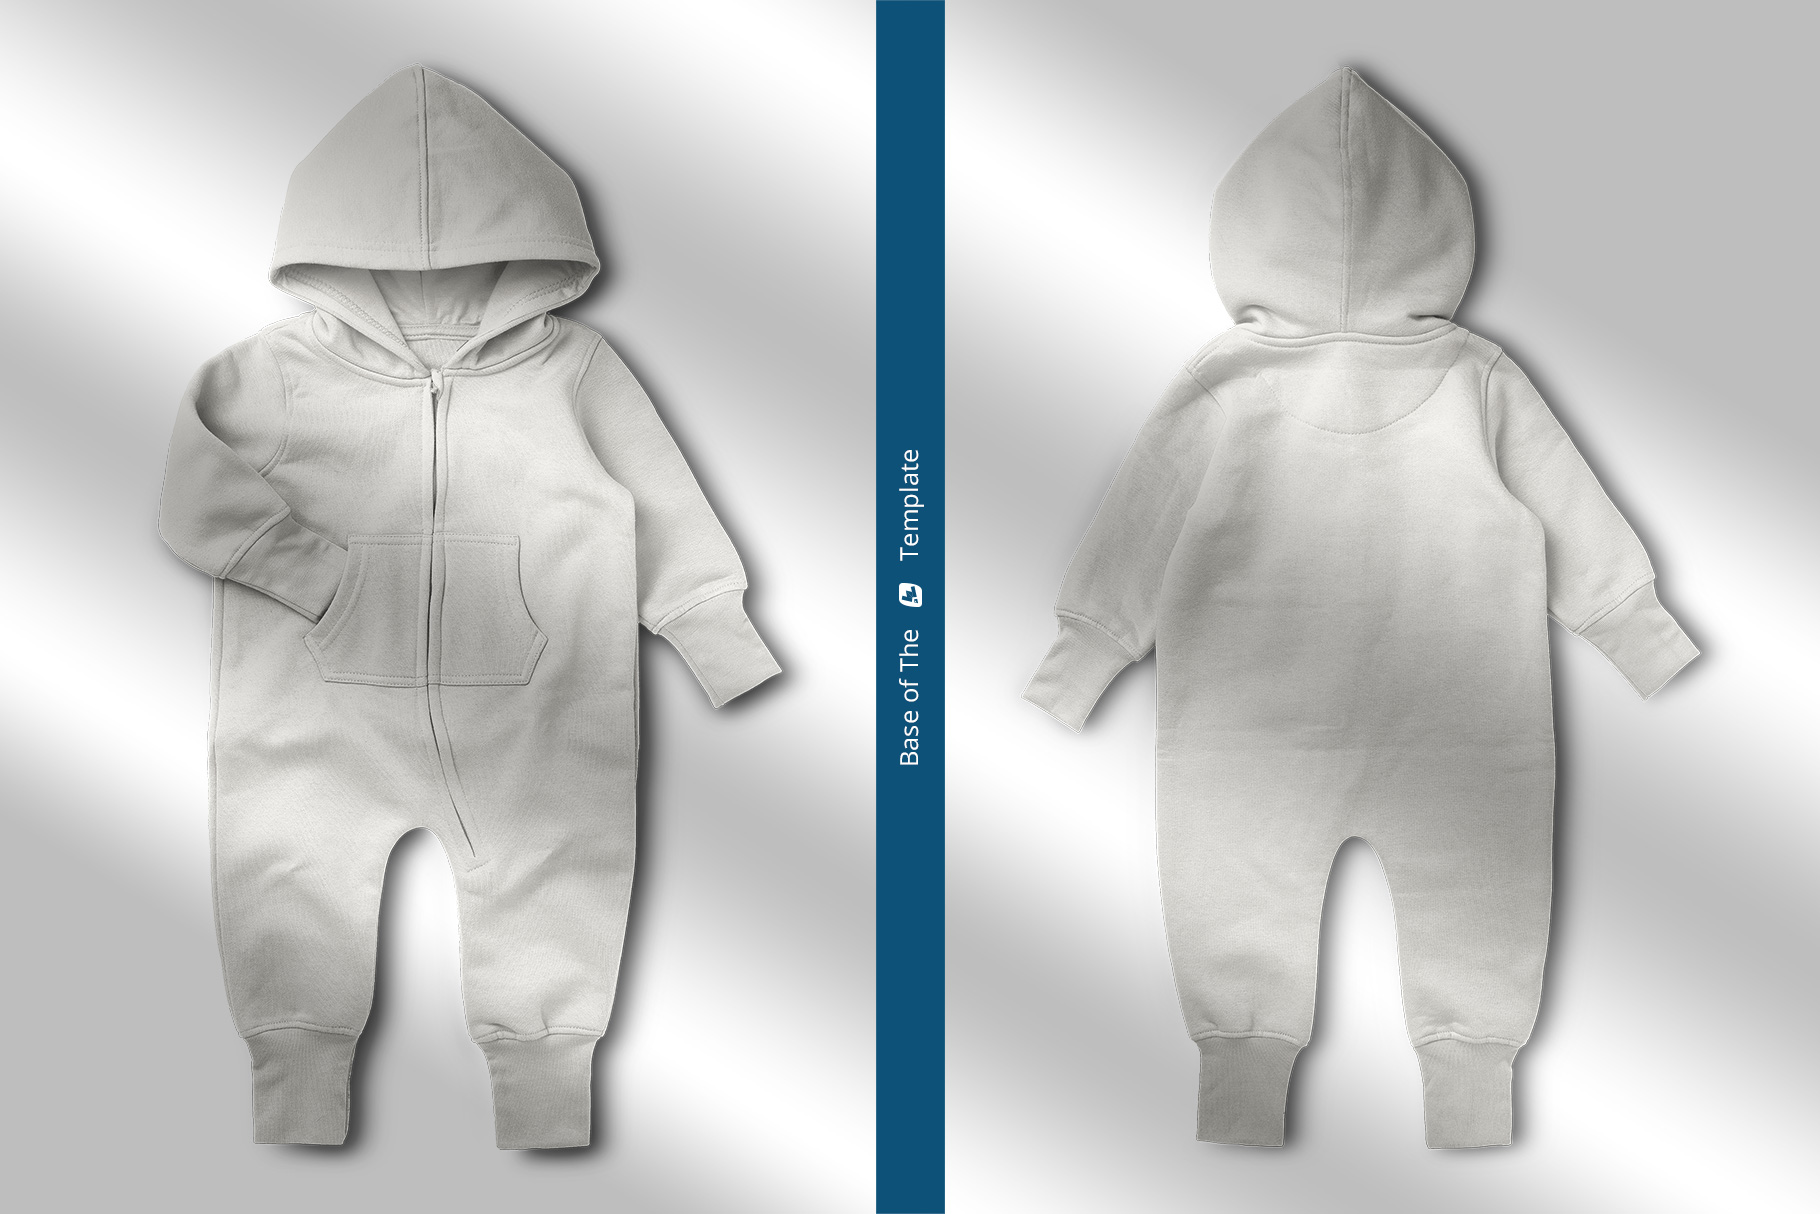 base images of the baby hoodie jumpsuit mockup